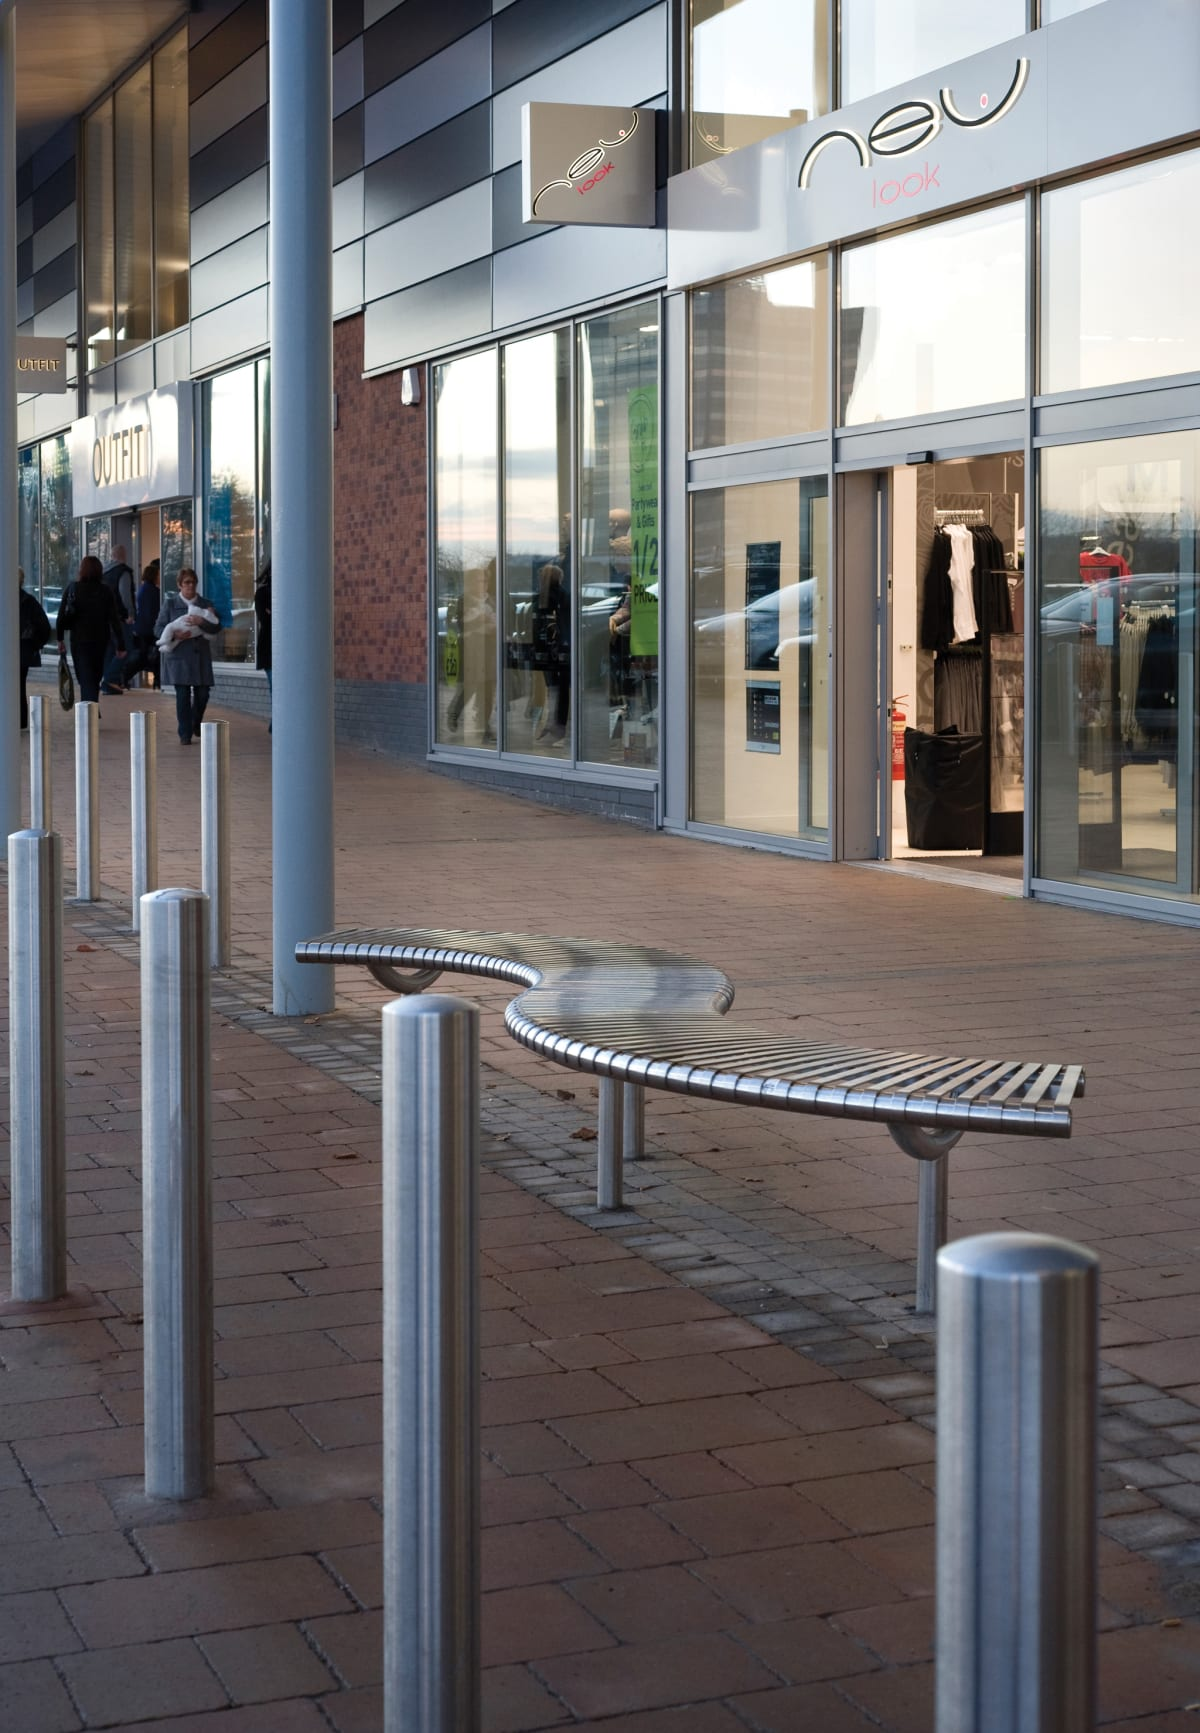 RS001 stainless steel bollards and M3 Serpentine bench, Washington